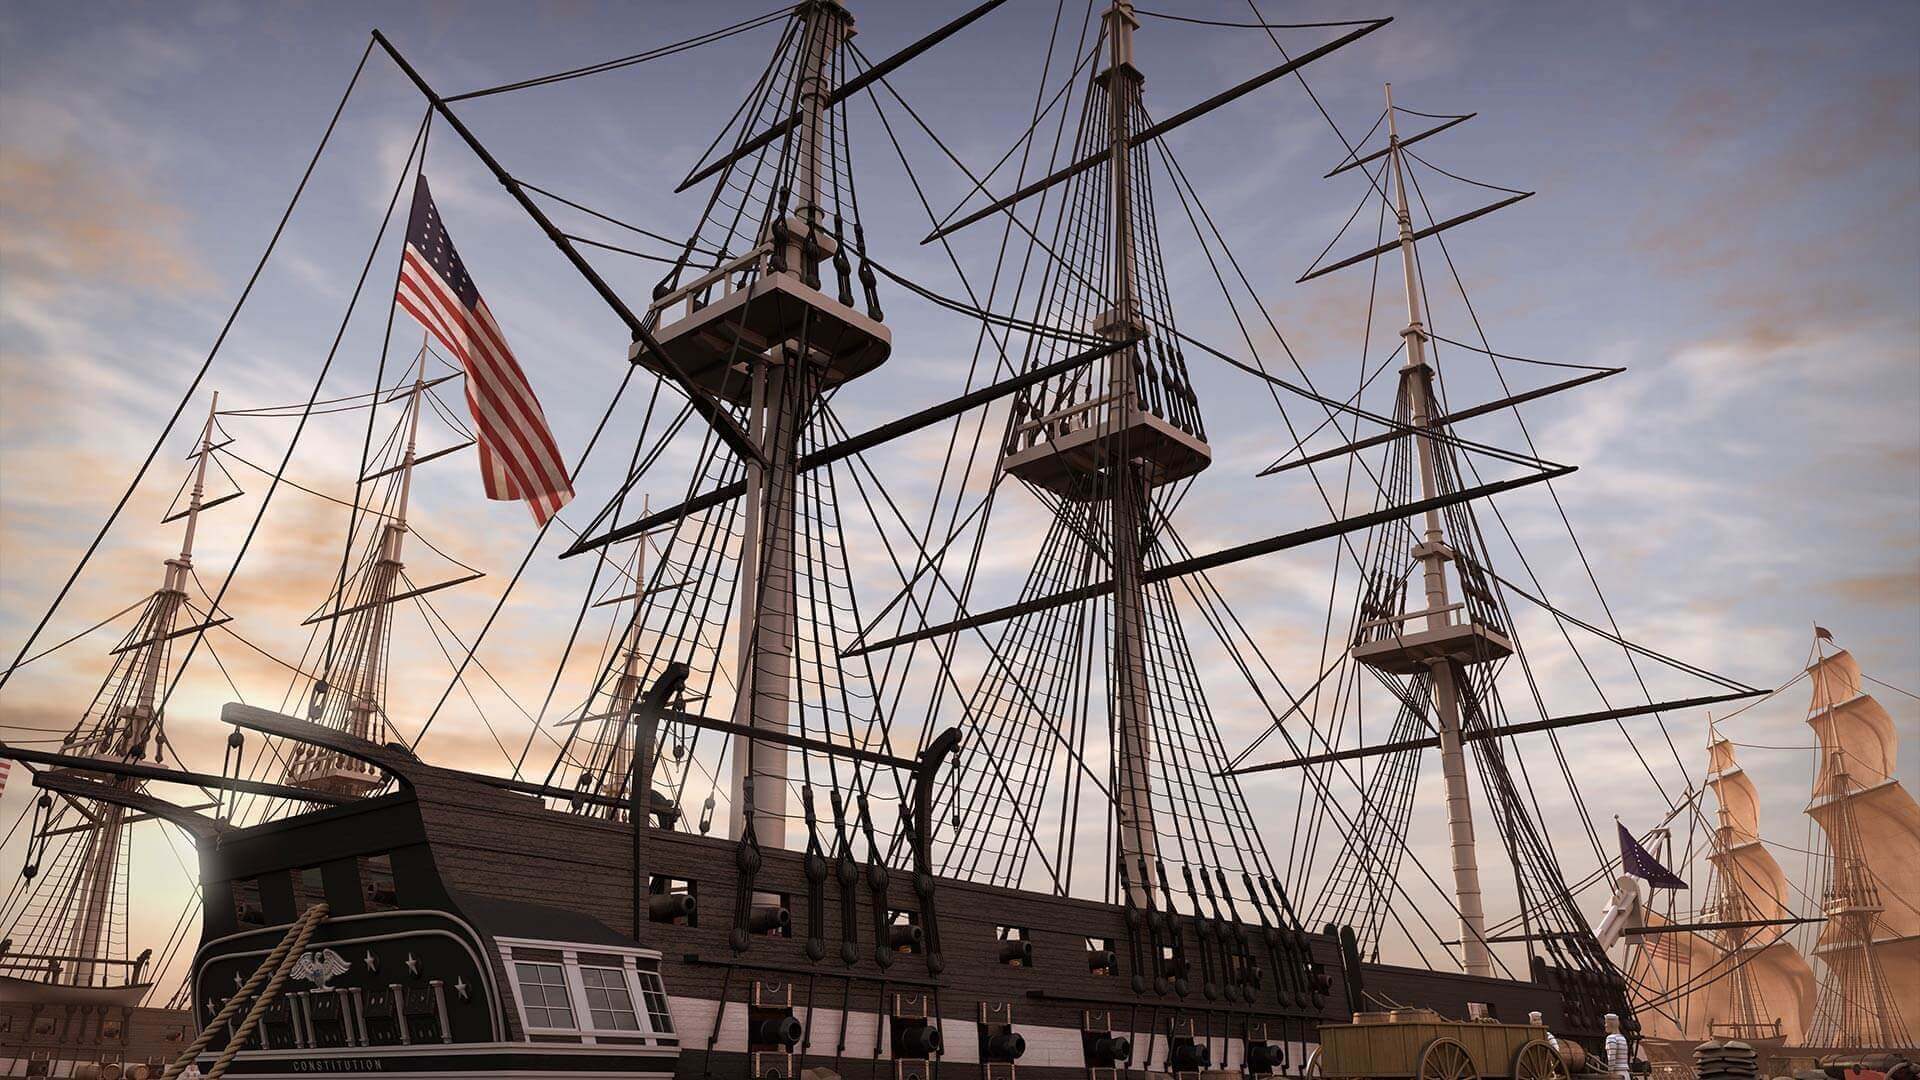 The USS Constitution open to the public